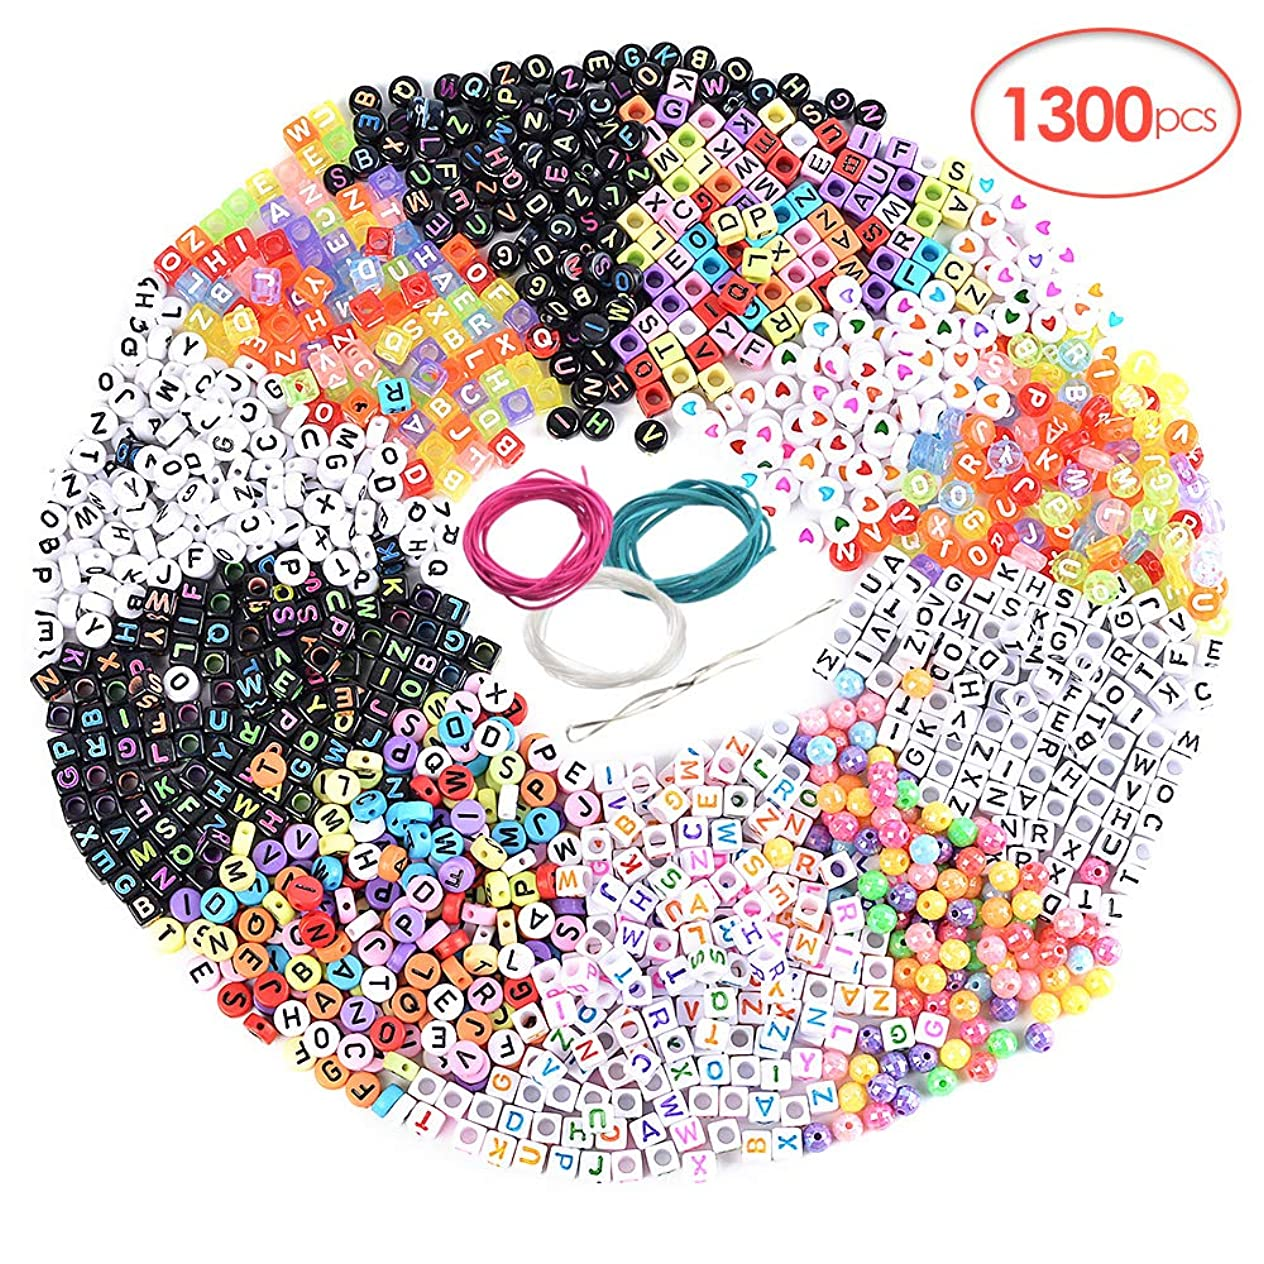 RainBabe 1300PCS Letter Beads 11 Styles Letter Beads for Necklaces Acrylic Letter Beads for Bracelets Variety Jewelry Kits Craft Letters Beads Jewelry Accessories Handmade Beads DIY Material puwrtmhs297